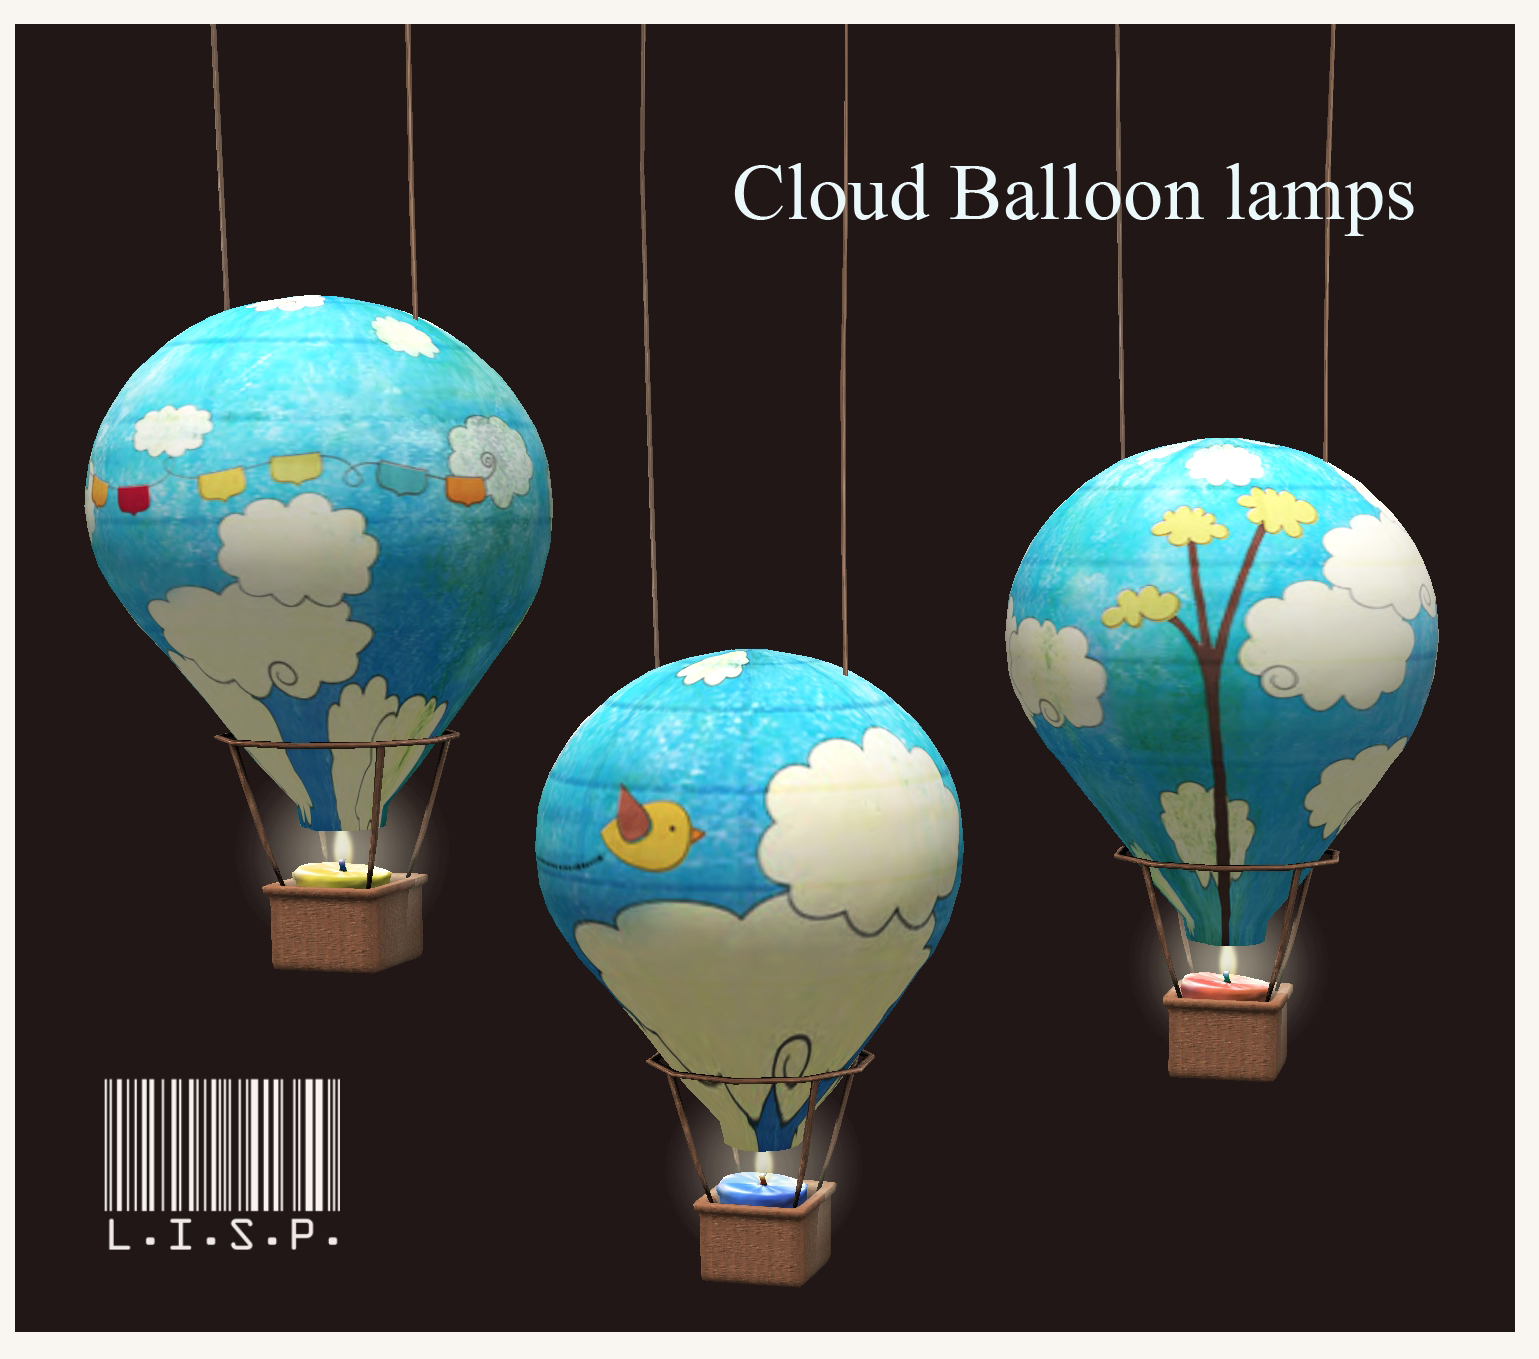 l i s p bazaar hot air balloon lamps lisp bazaar. Black Bedroom Furniture Sets. Home Design Ideas